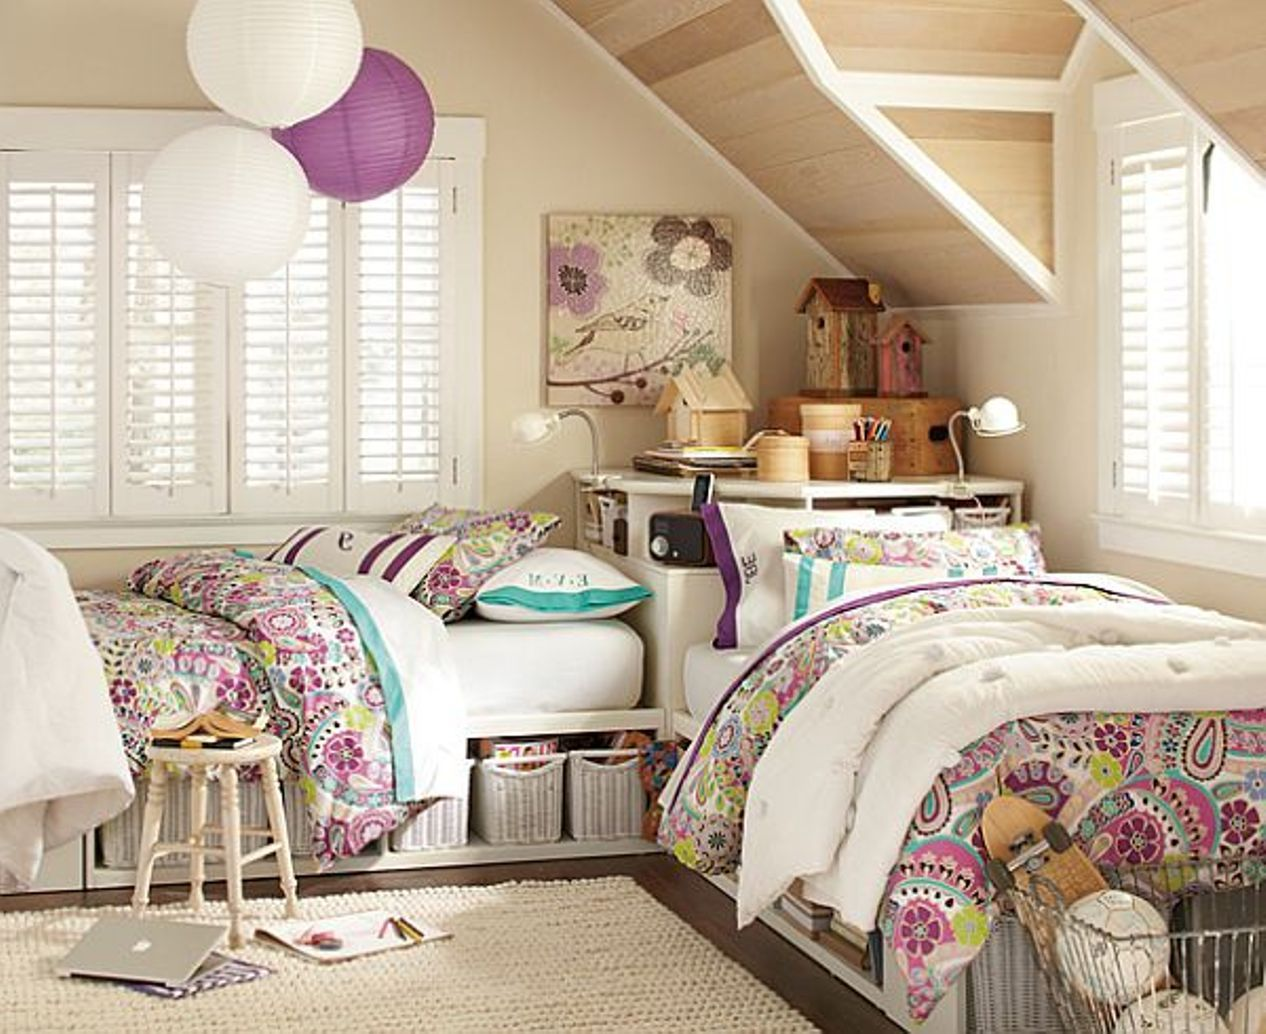 Tolle Mädchen Schlafzimmer Sets | Idée chambre ado, Chambre ...